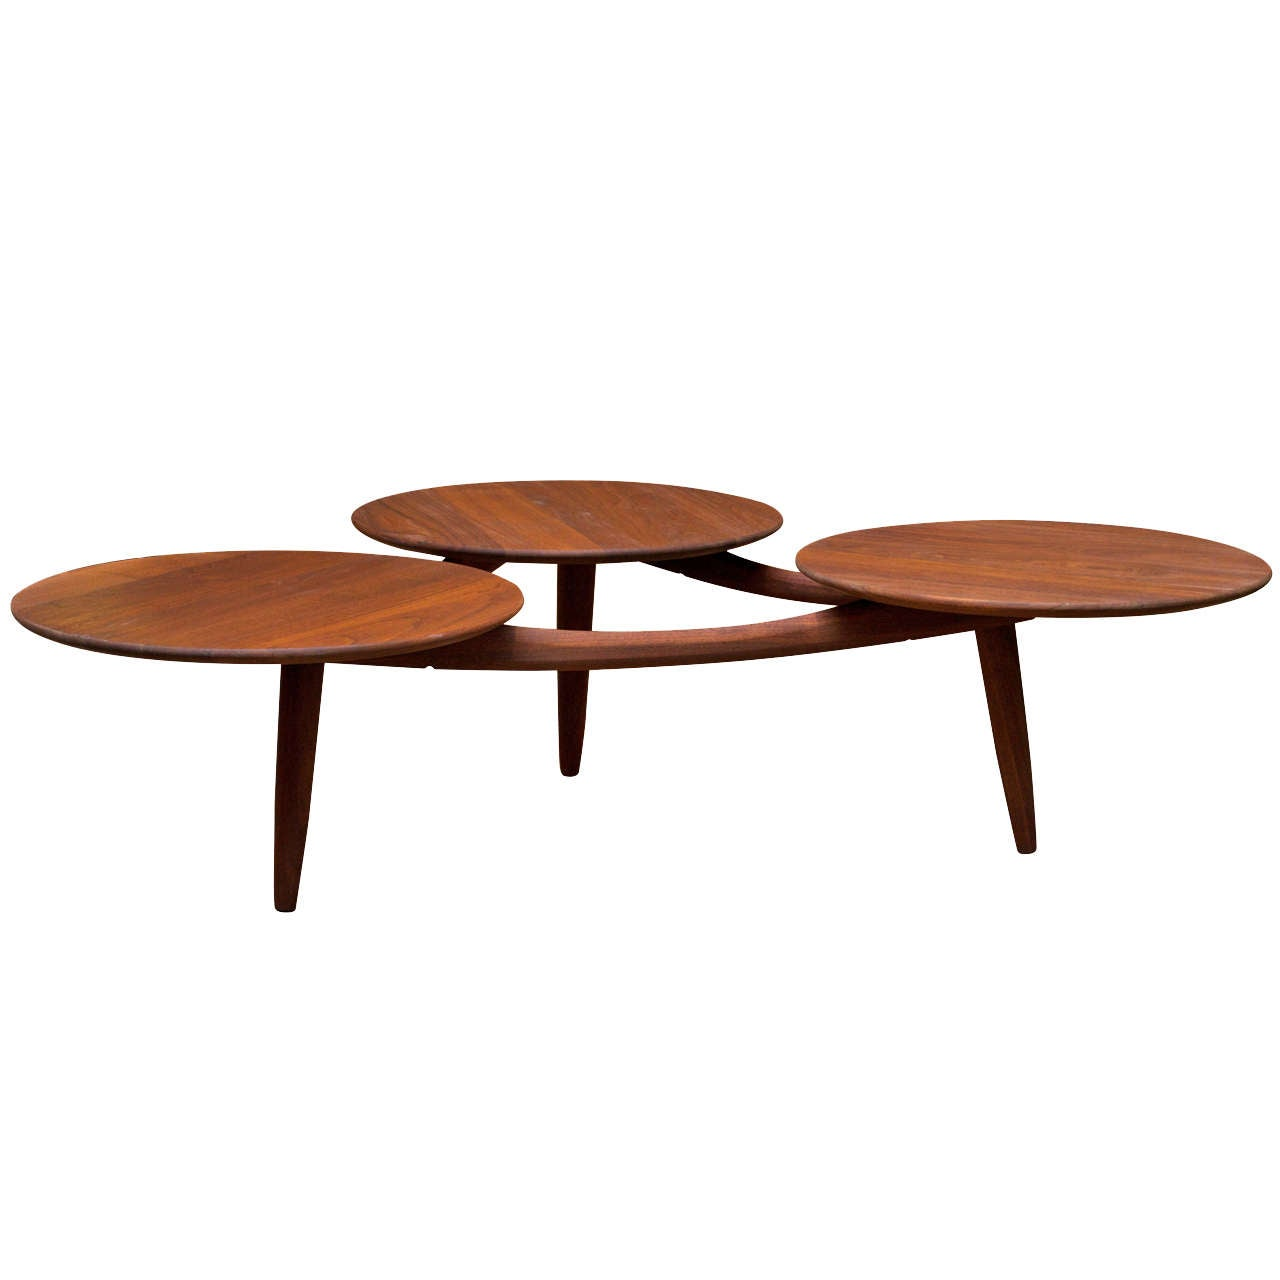 Mid century modern coffee table at 1stdibs for Mid century modern coffee table